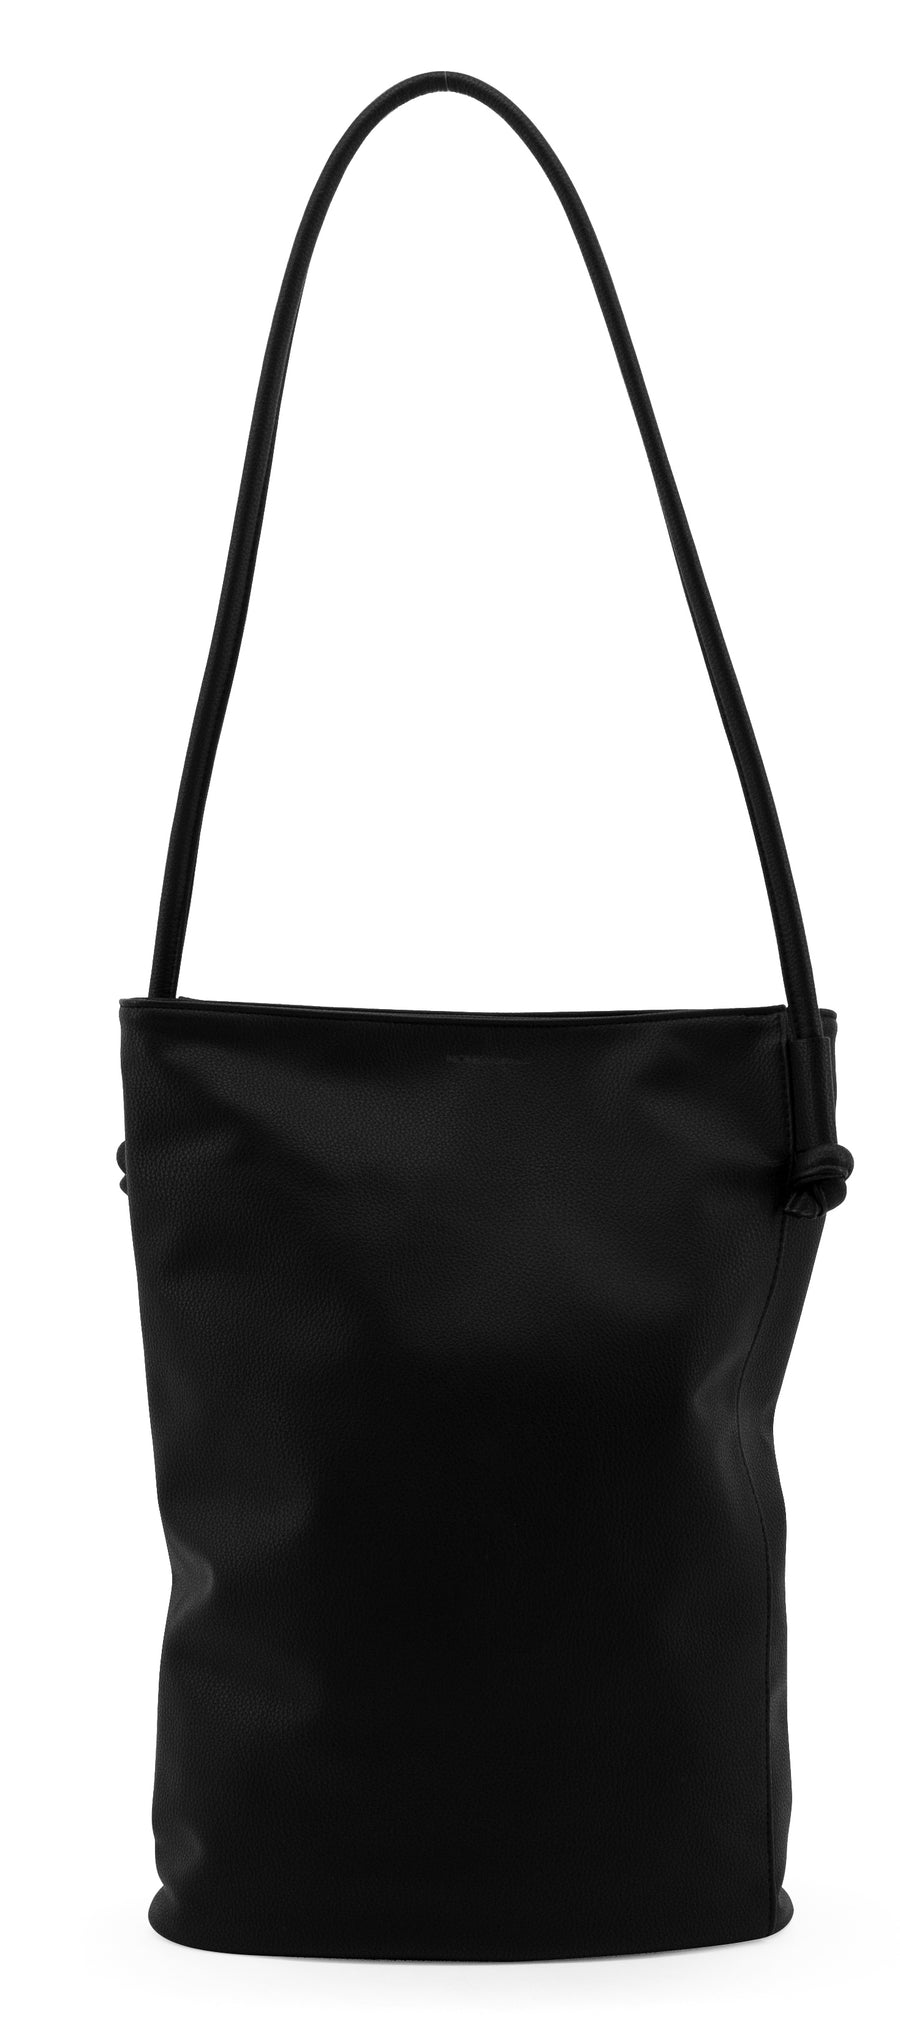 Naomi Bag Vegan Leather black MONK AND ANNA